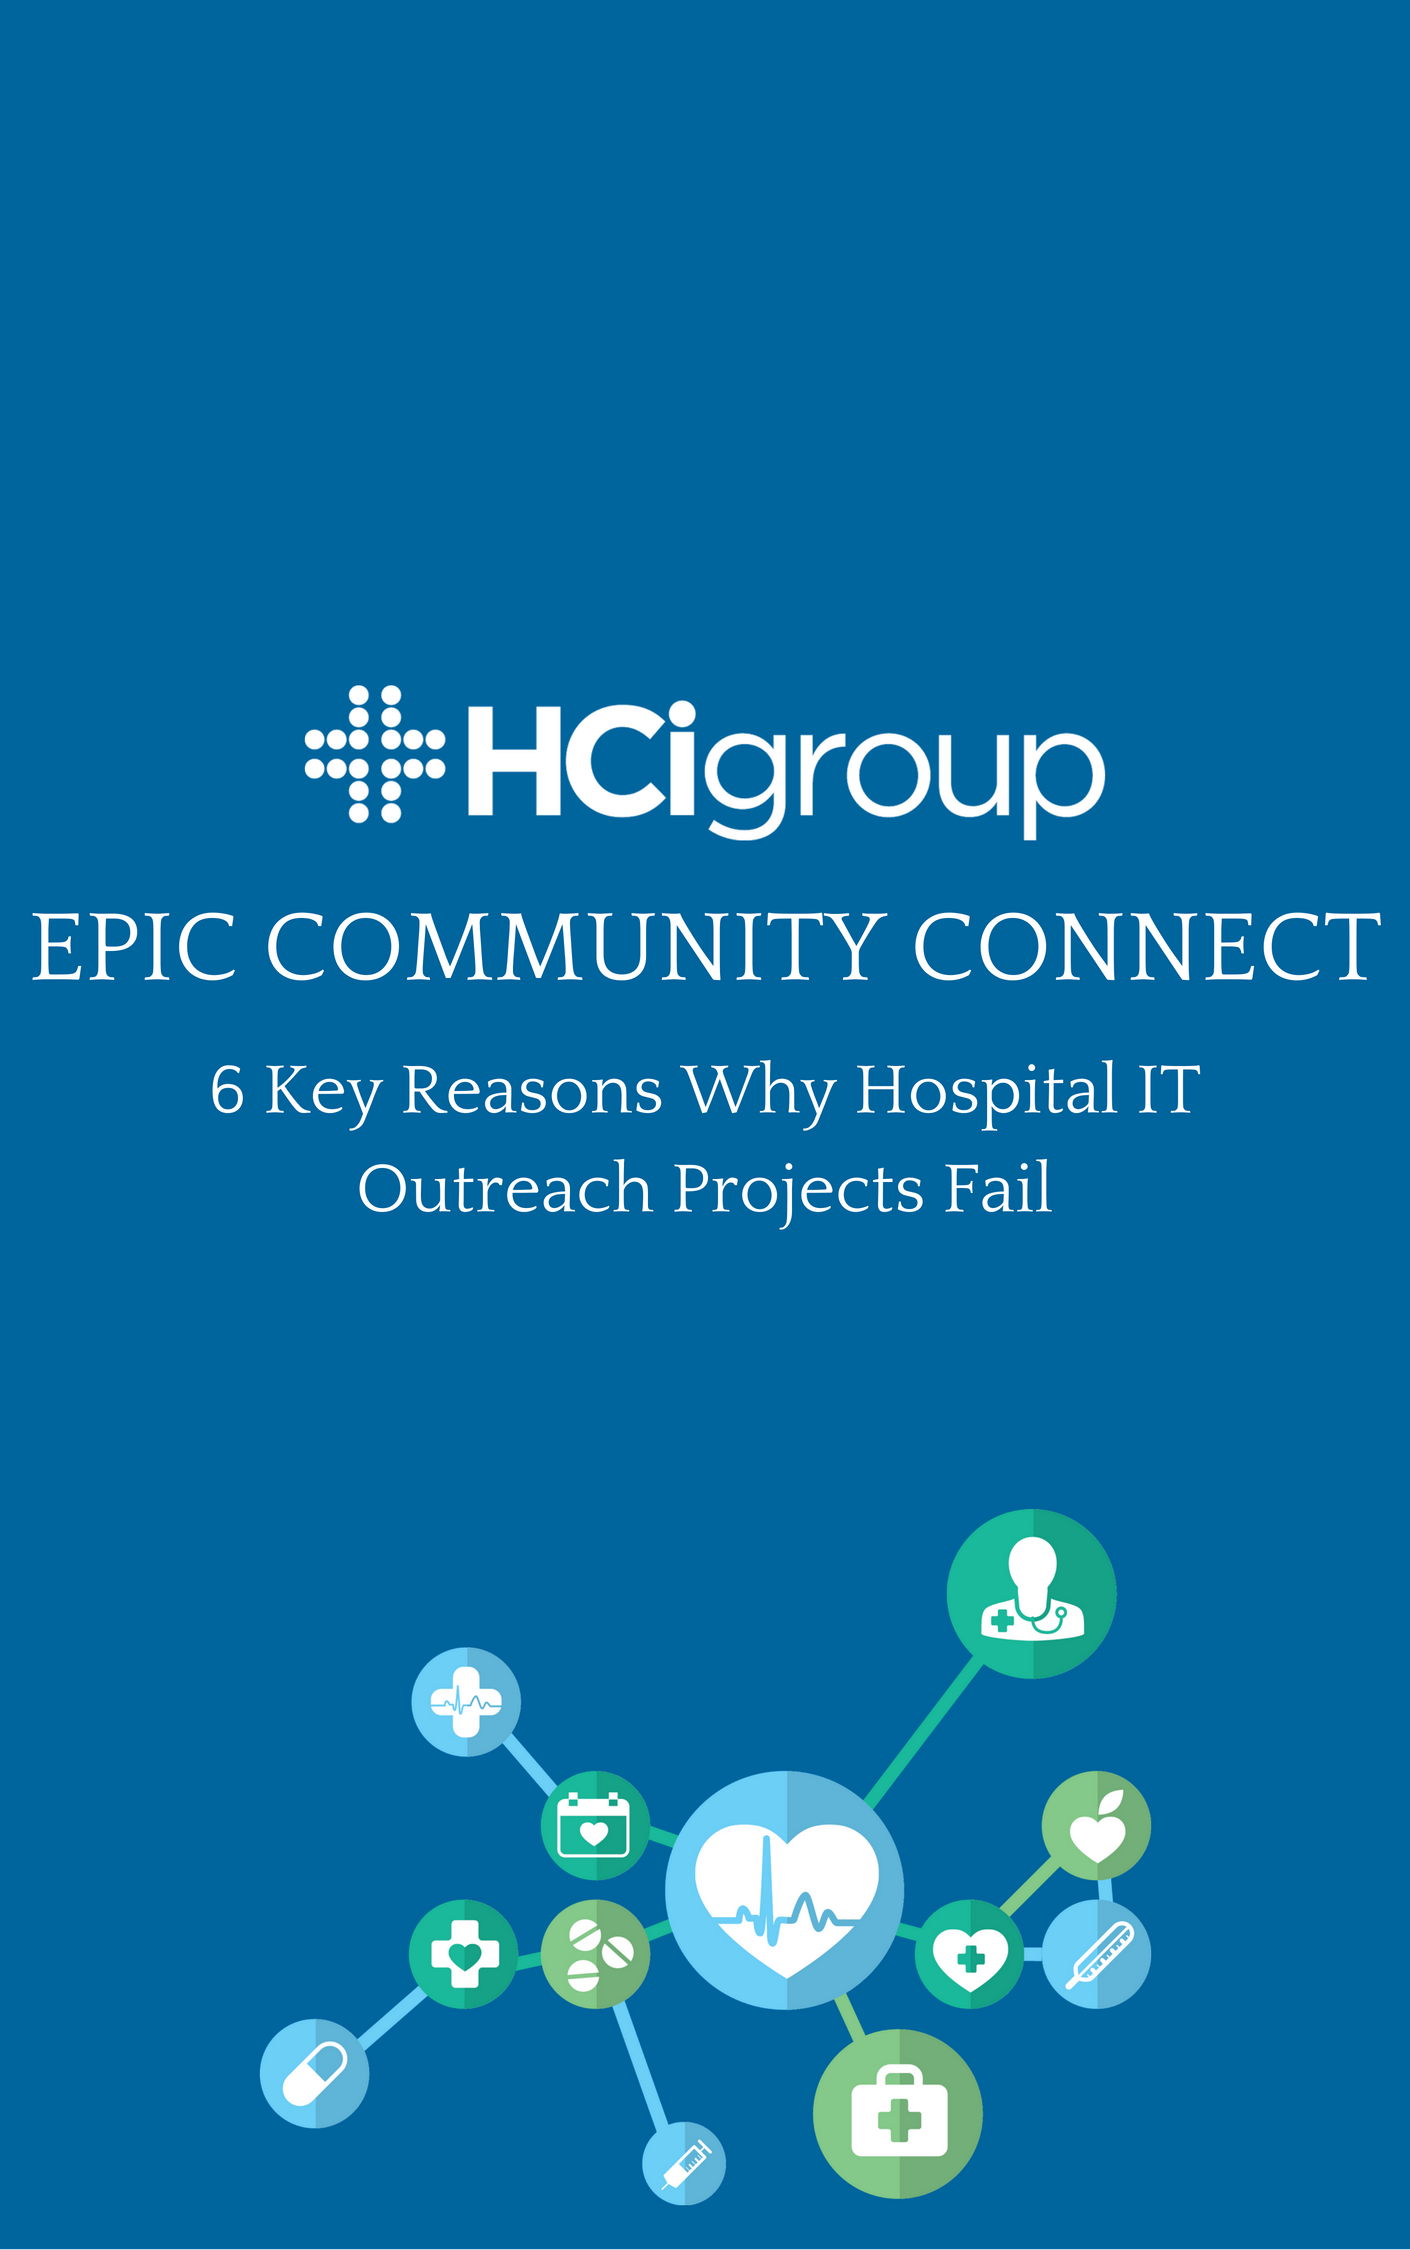 Download Epic Community Connect Key Reason Hospital IT Outreach Projects Fail